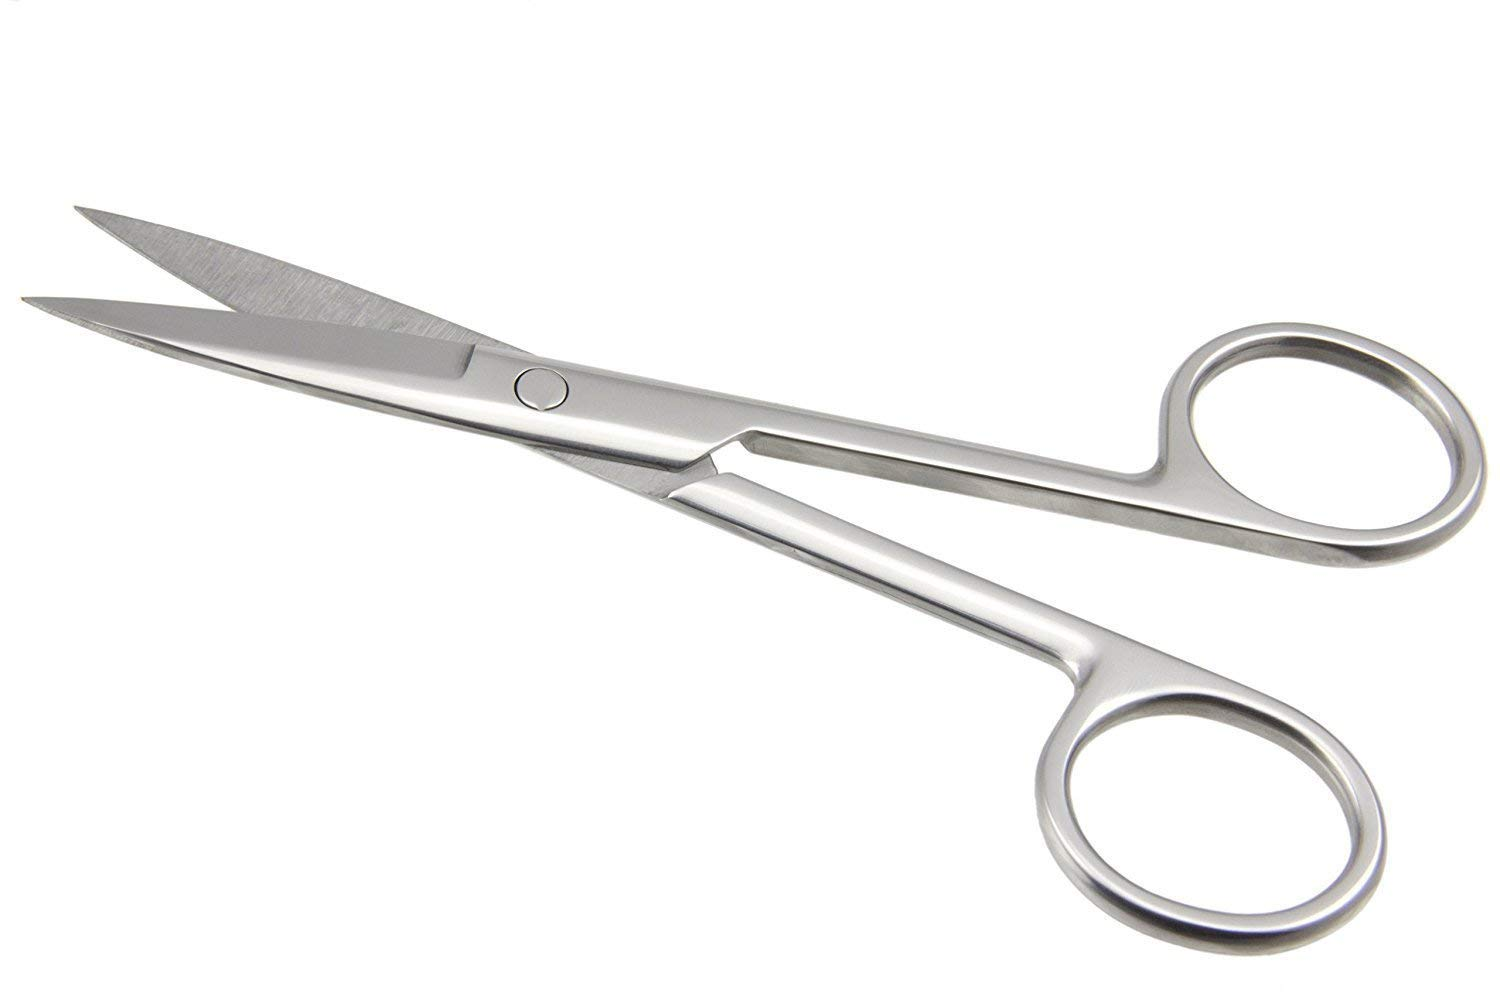 Confidence Small Scissors For Nose Hair Cutting Moustache Scissors For Men,  Silver, Pack Of 10